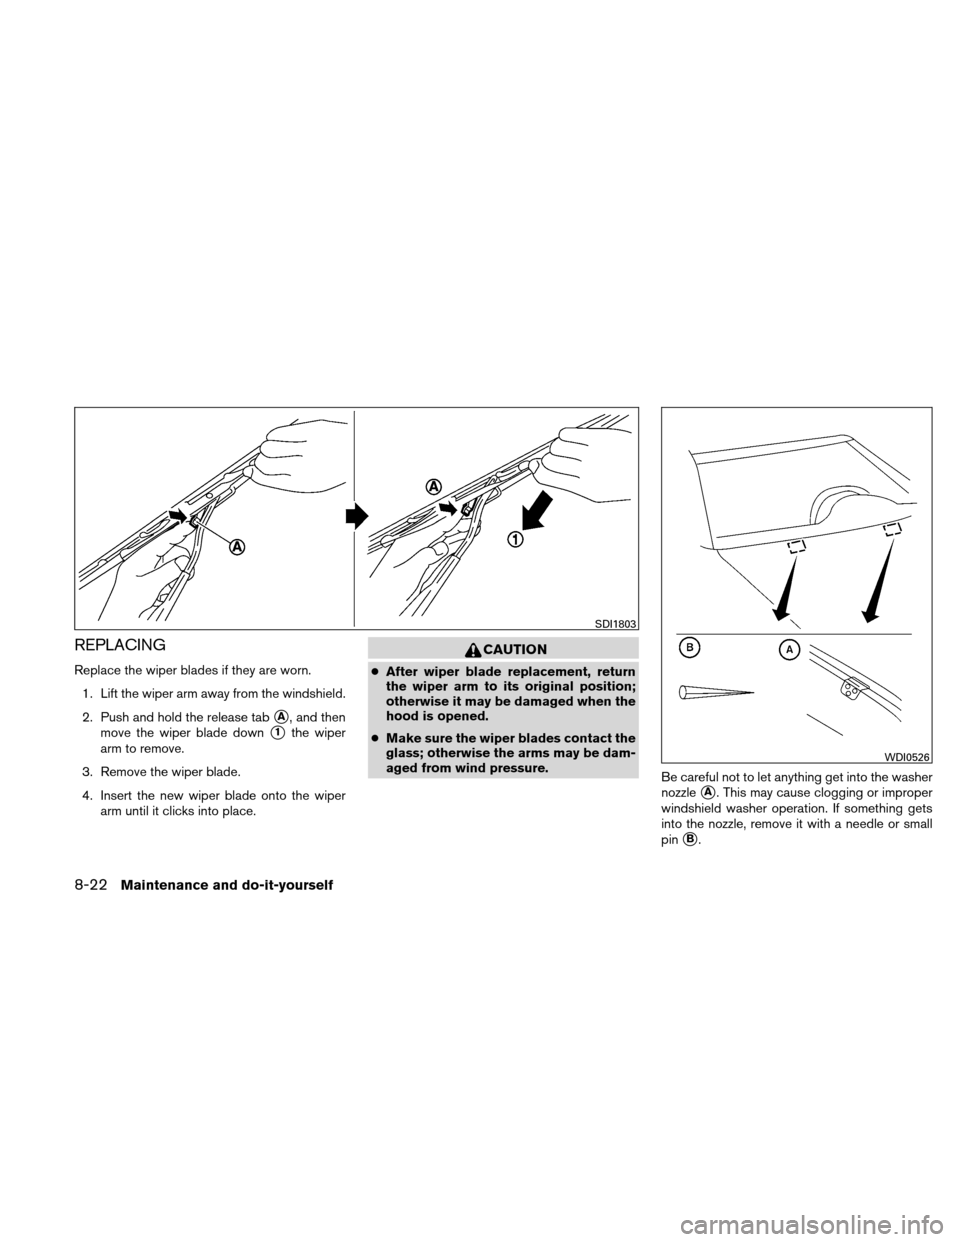 NISSAN VERSA HATCHBACK 2011 1.G Owners Manual REPLACING Replace the wiper blades if they are worn.1. Lift the wiper arm away from the windshield. 2. Push and hold the release tab A, and then move the wiper blade down 1the wiper arm to remove. 3